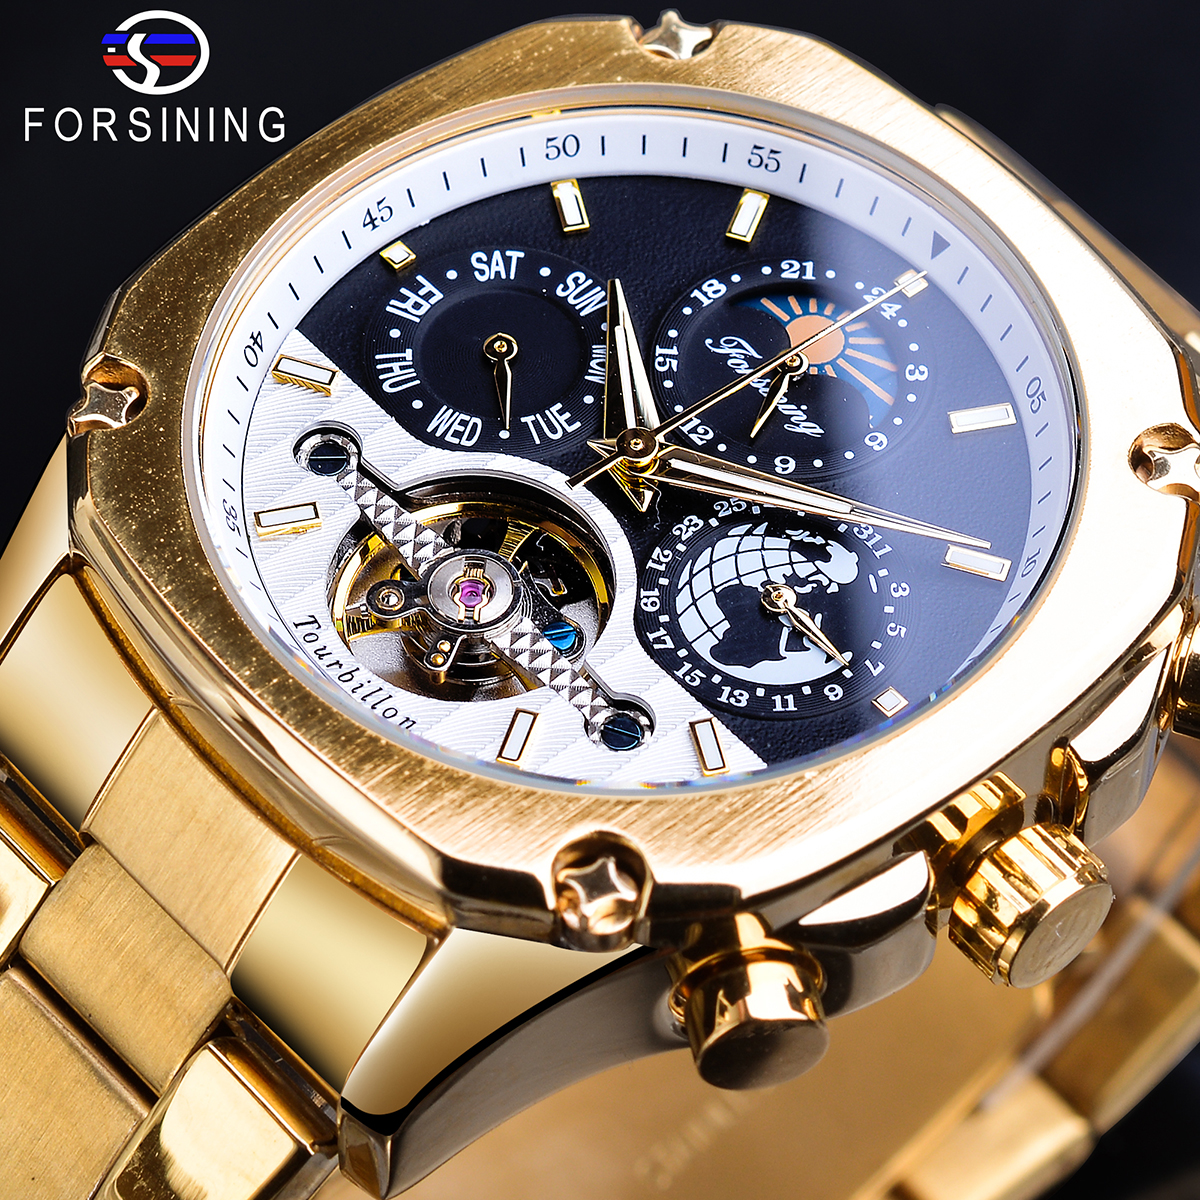 Forsining Grand Golden Automatic Watch Tourbillon Moonphase Male Mechanical Calendar Self-Wind Steel Belts Wristwatches Relogio